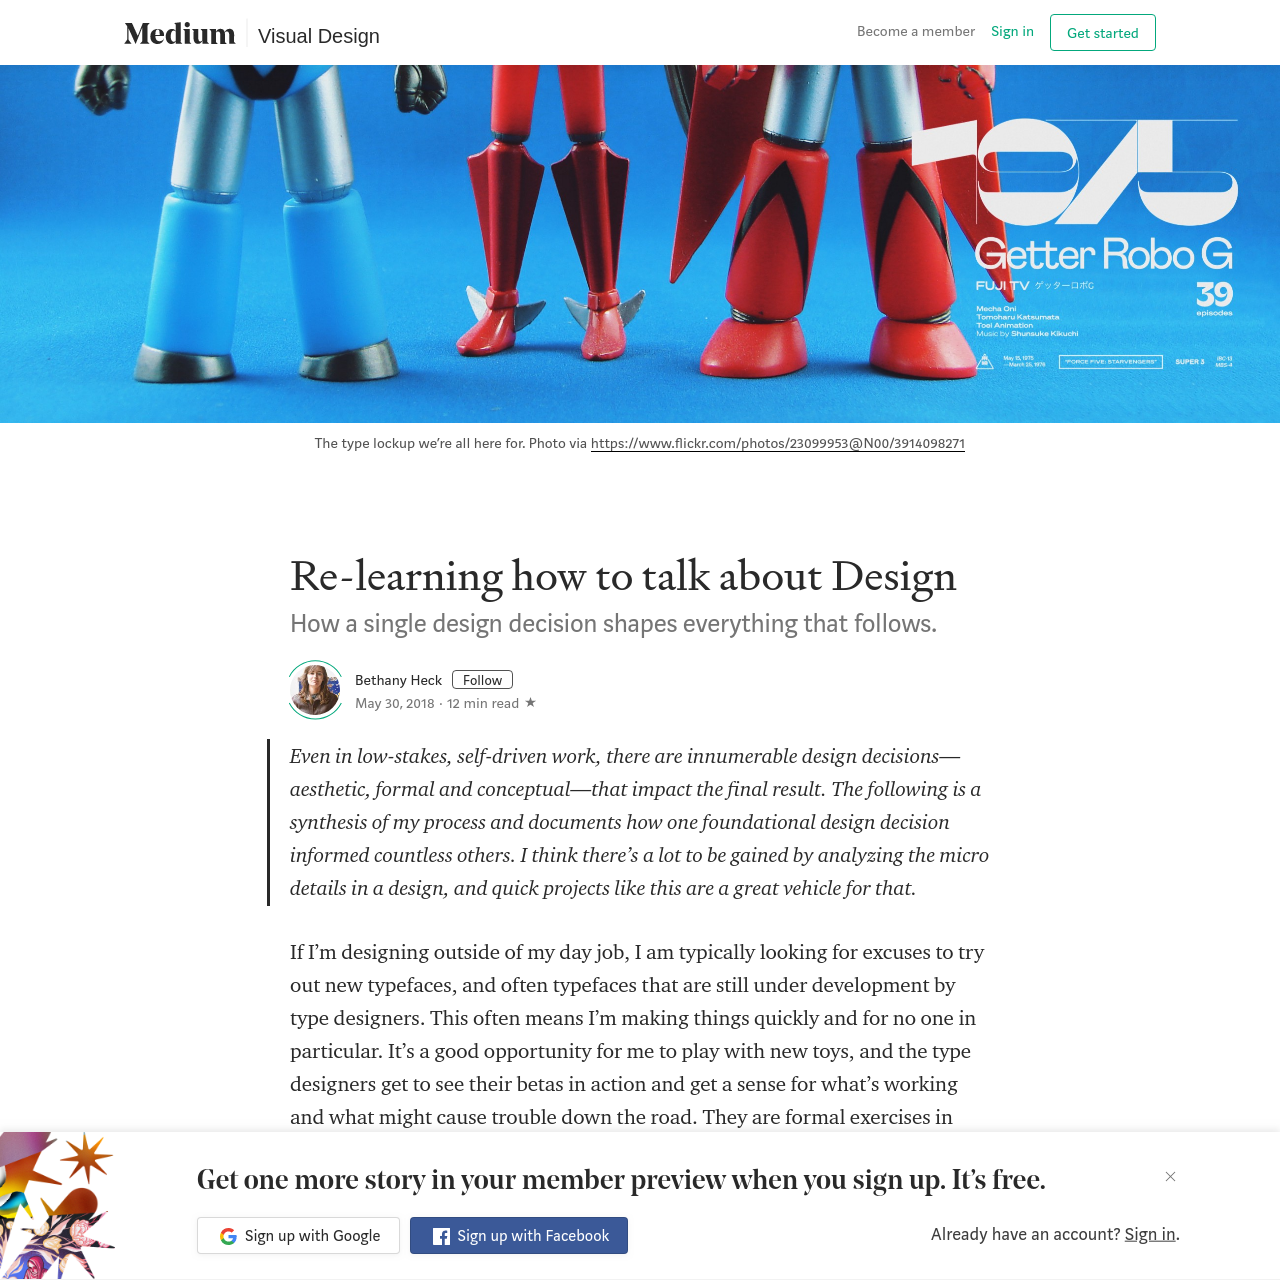 Are na / Re-learning how to talk about Design - Bethany Heck - Medium